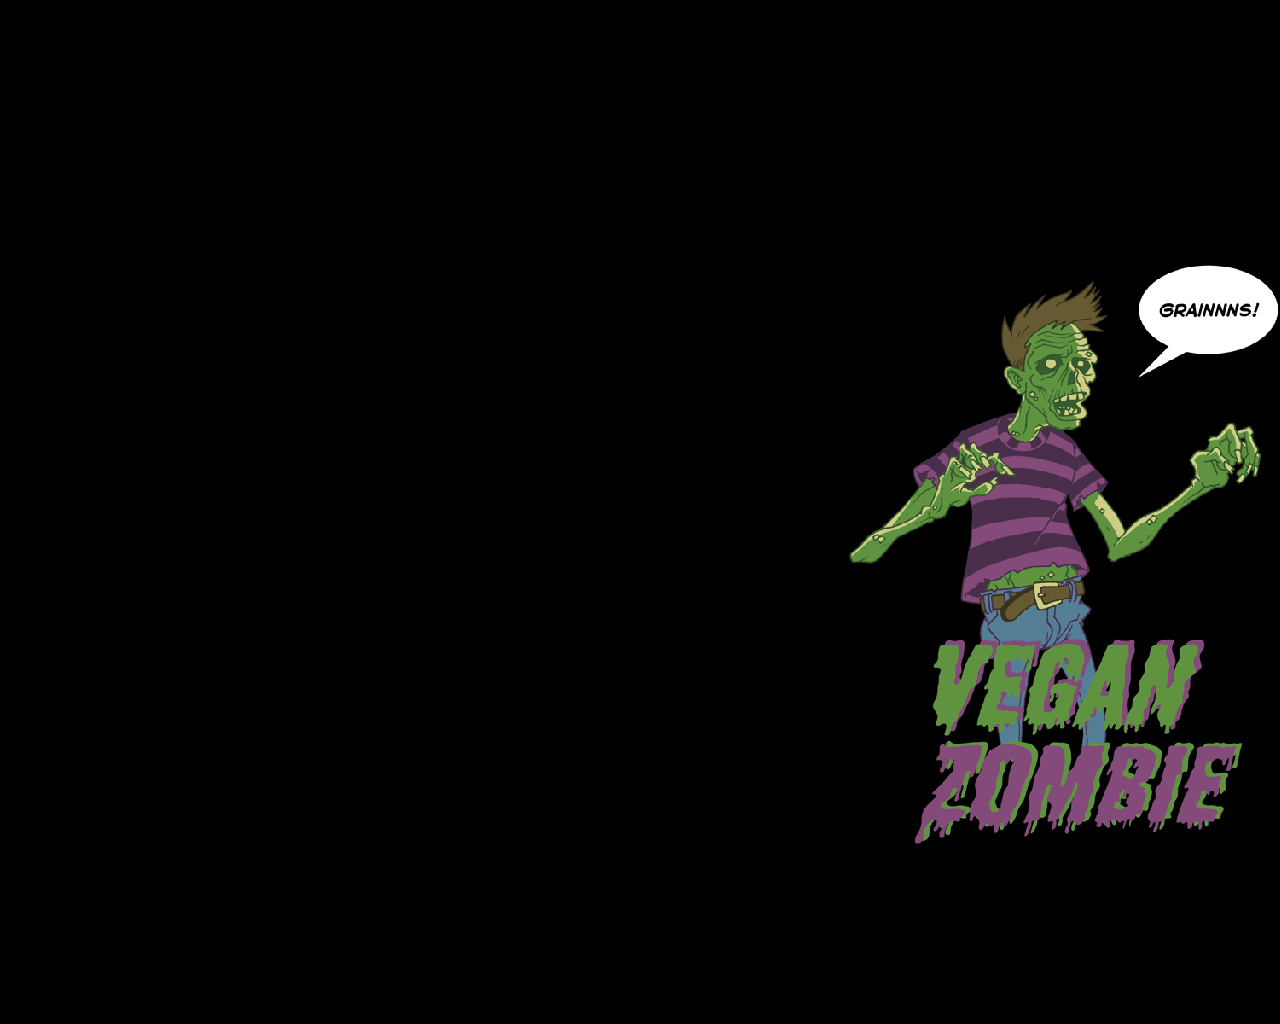 Free Download Zombie Wallpaper Desktop Dark Zombie Wallpaper